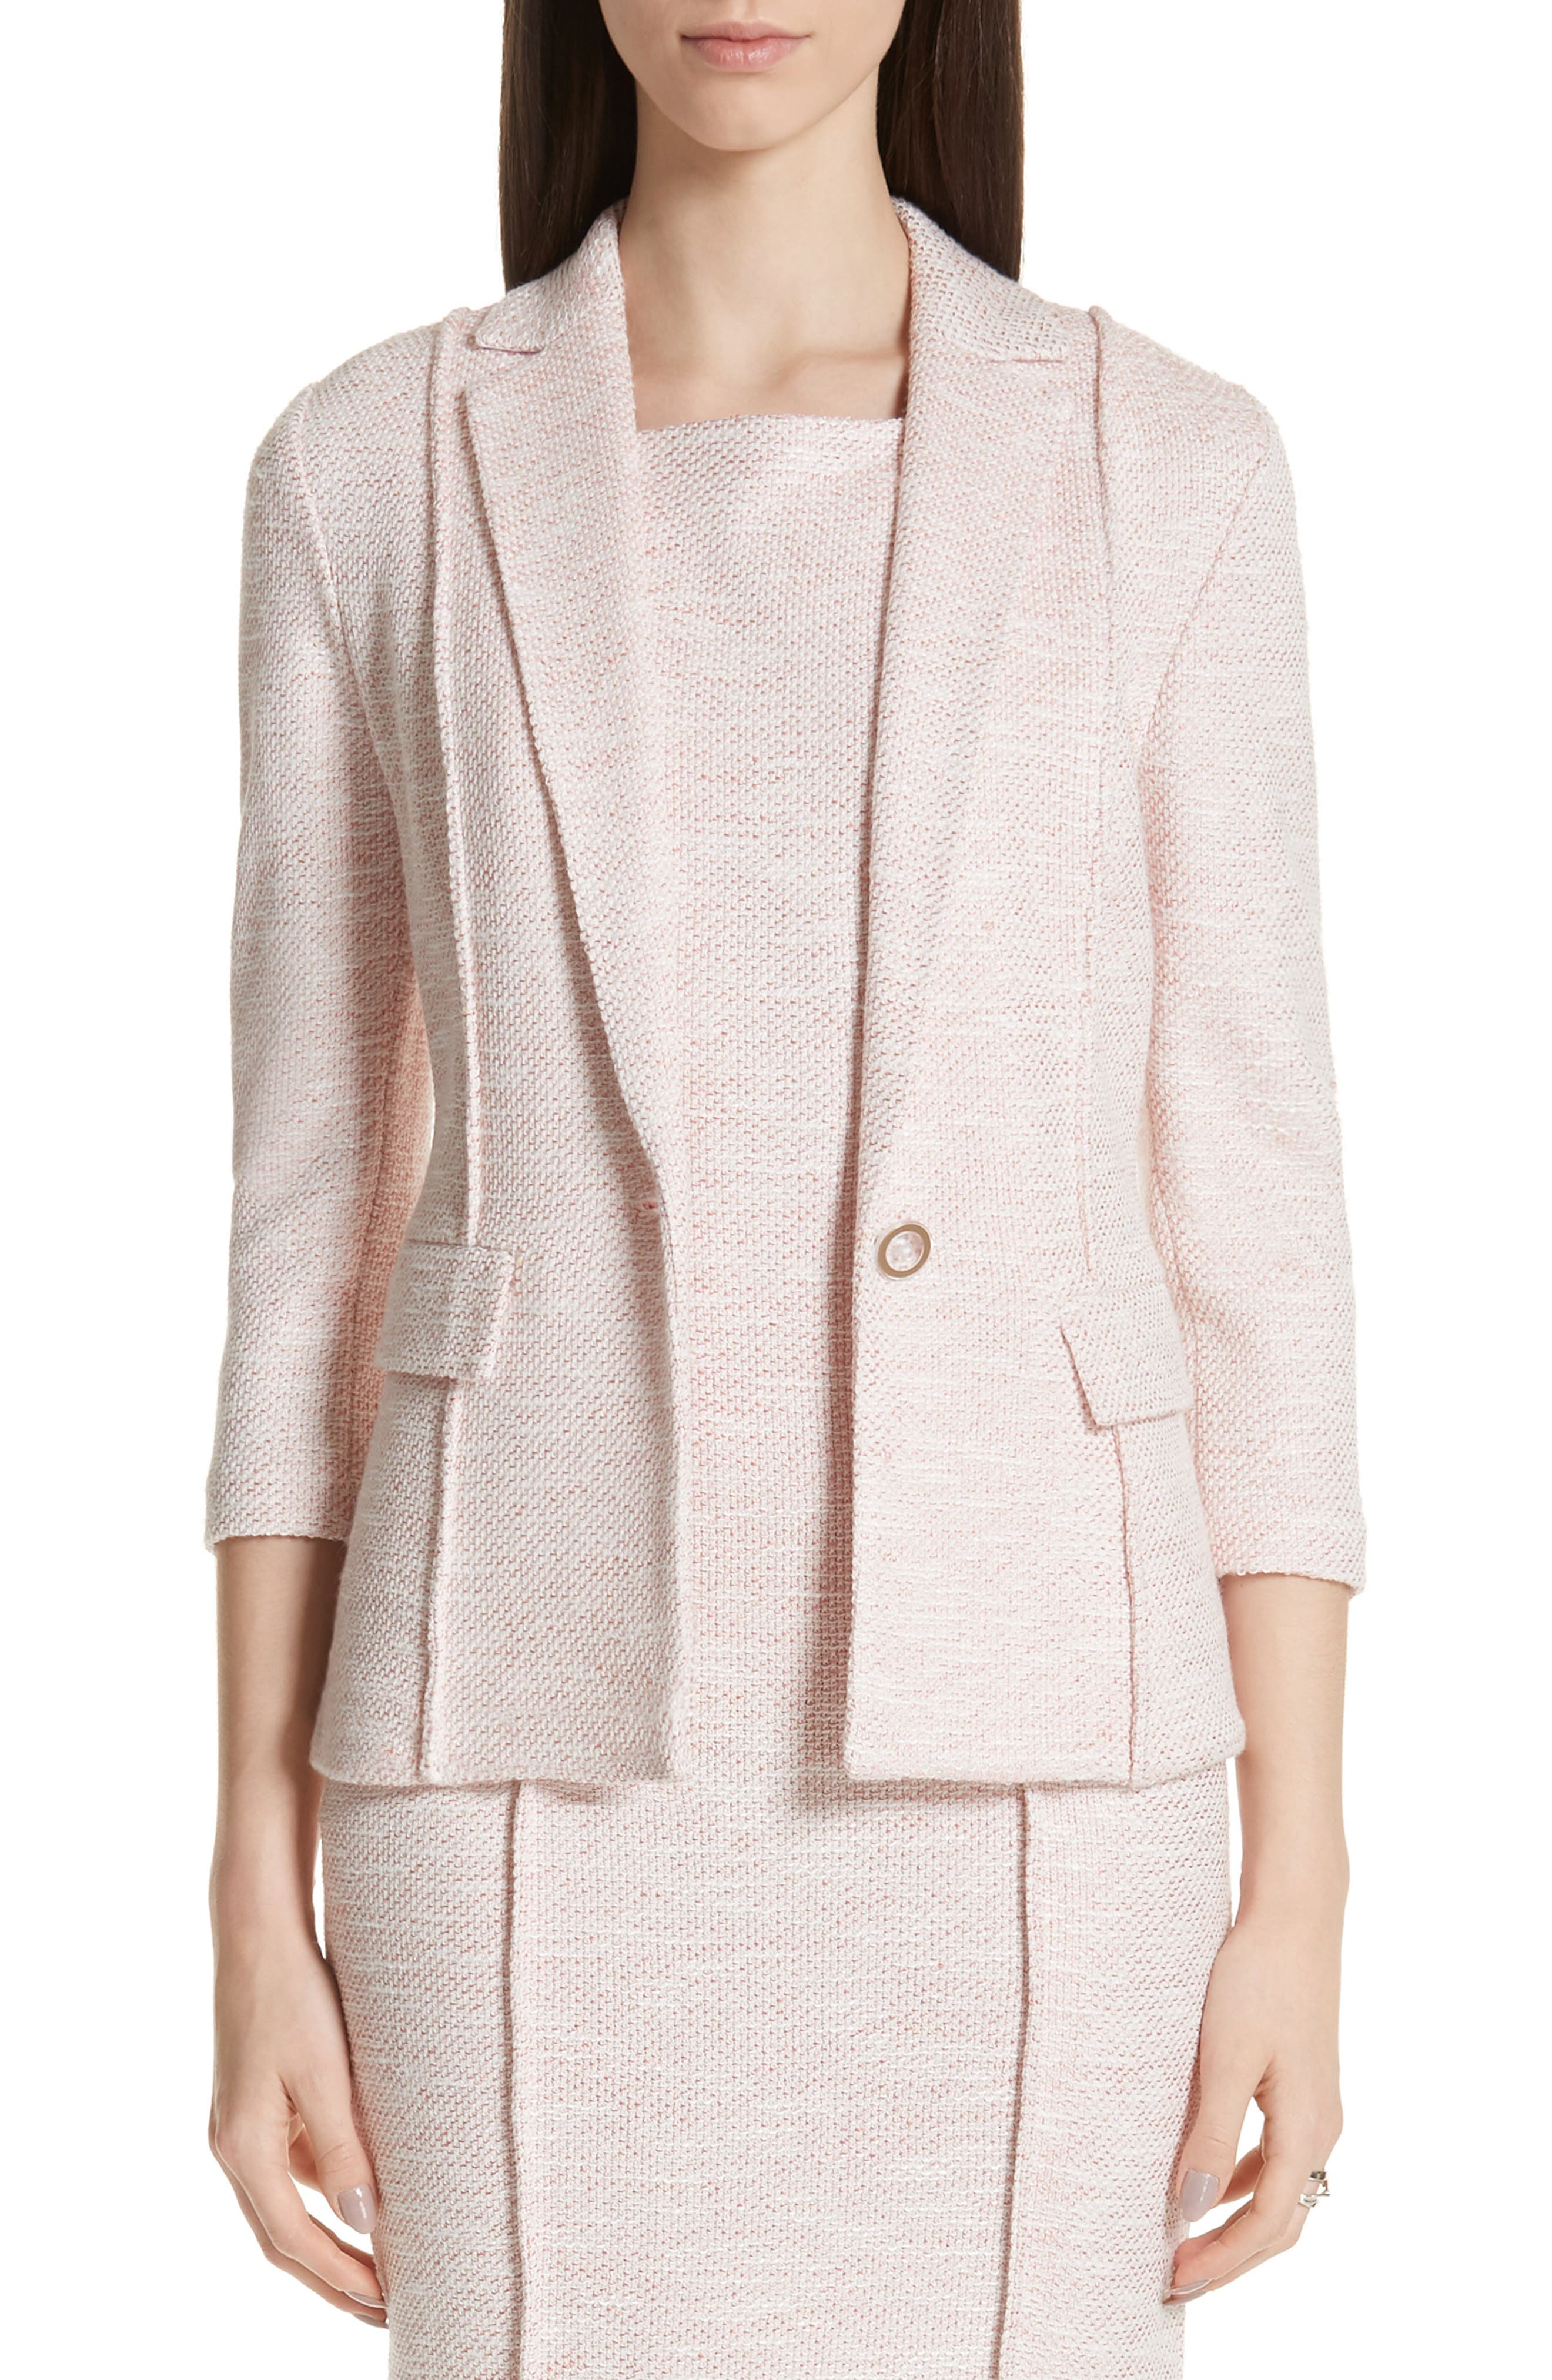 ST. JOHN COLLECTION Belinda Knit Jacket, Main, color, WHITE/ CORAL MULTI